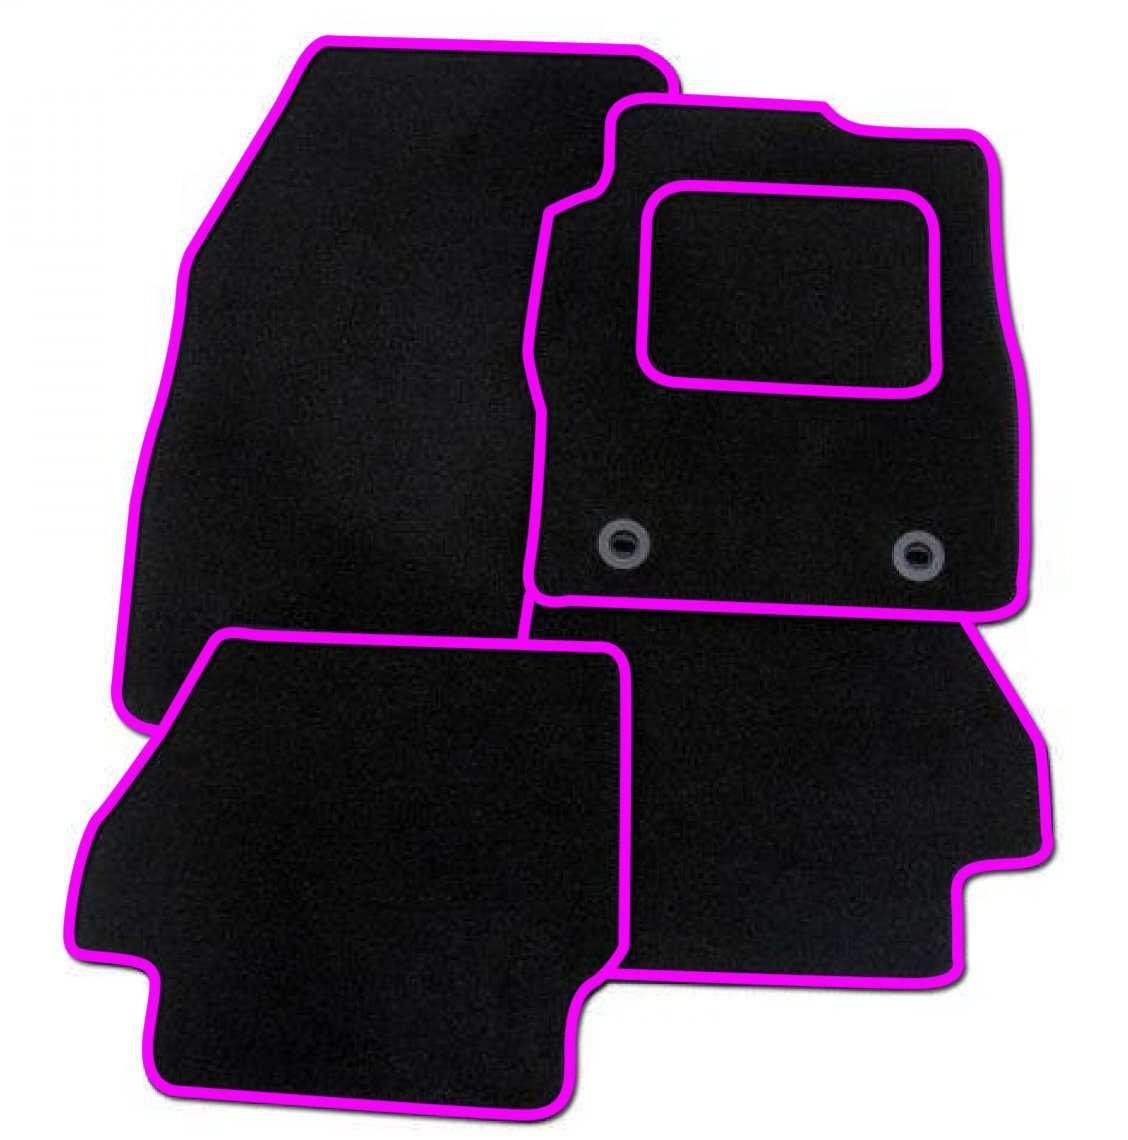 RED TRIM Rmsone GENUINE FULLY TAILORED BLACK CARPET CAR MATS FOCUS 2005-2011